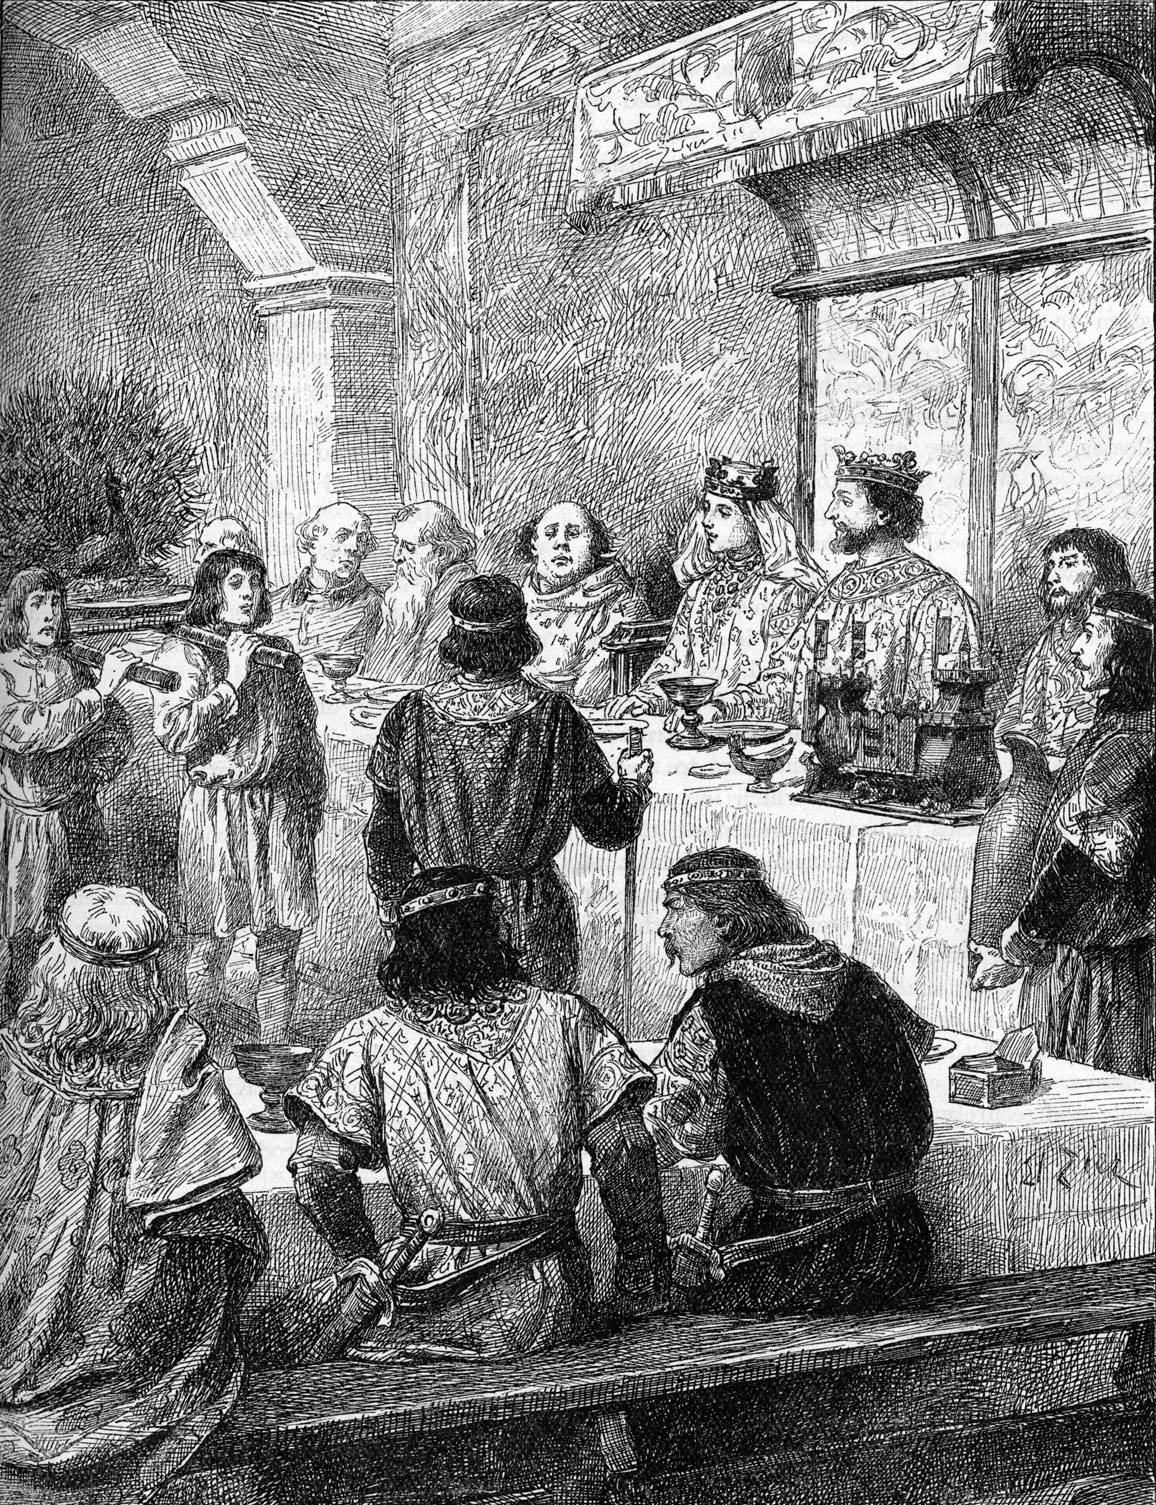 Henry III of England and Eleanor of Provence - marriage banquet. 1236  (Photo by Culture Club/Getty Images) *** Local Caption ***